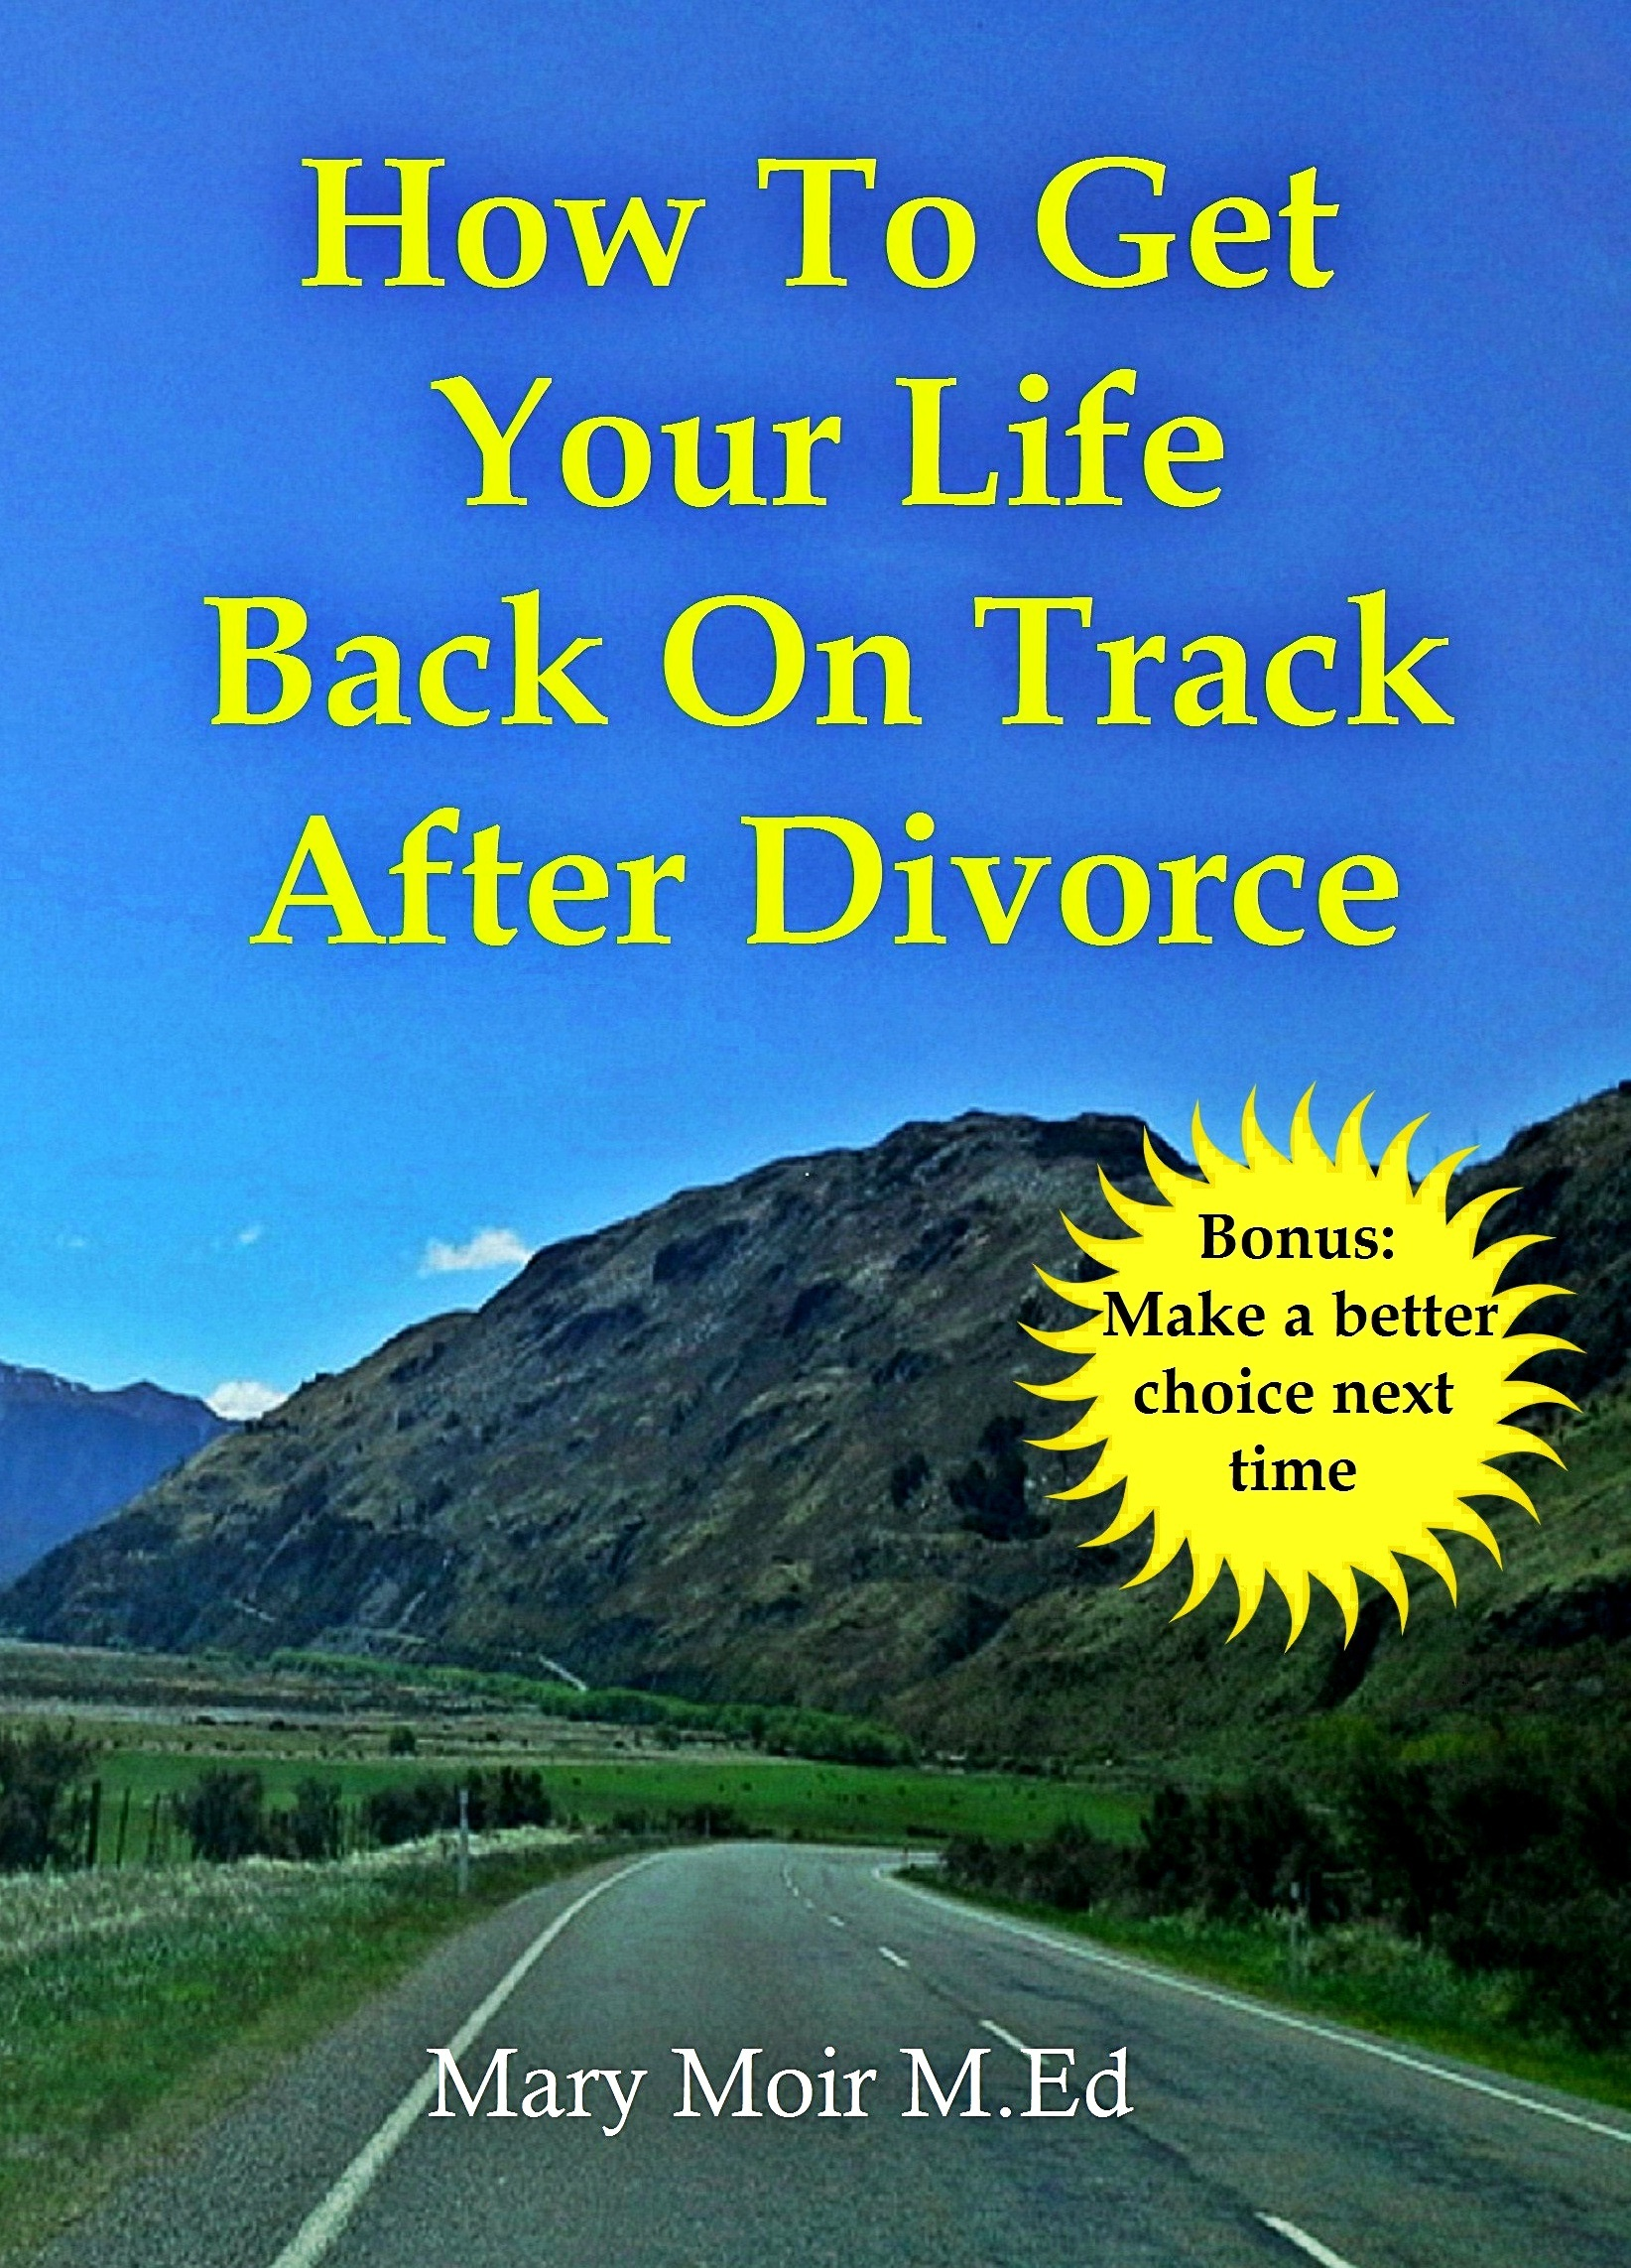 How To Get Your Life Back On Track After Divorce